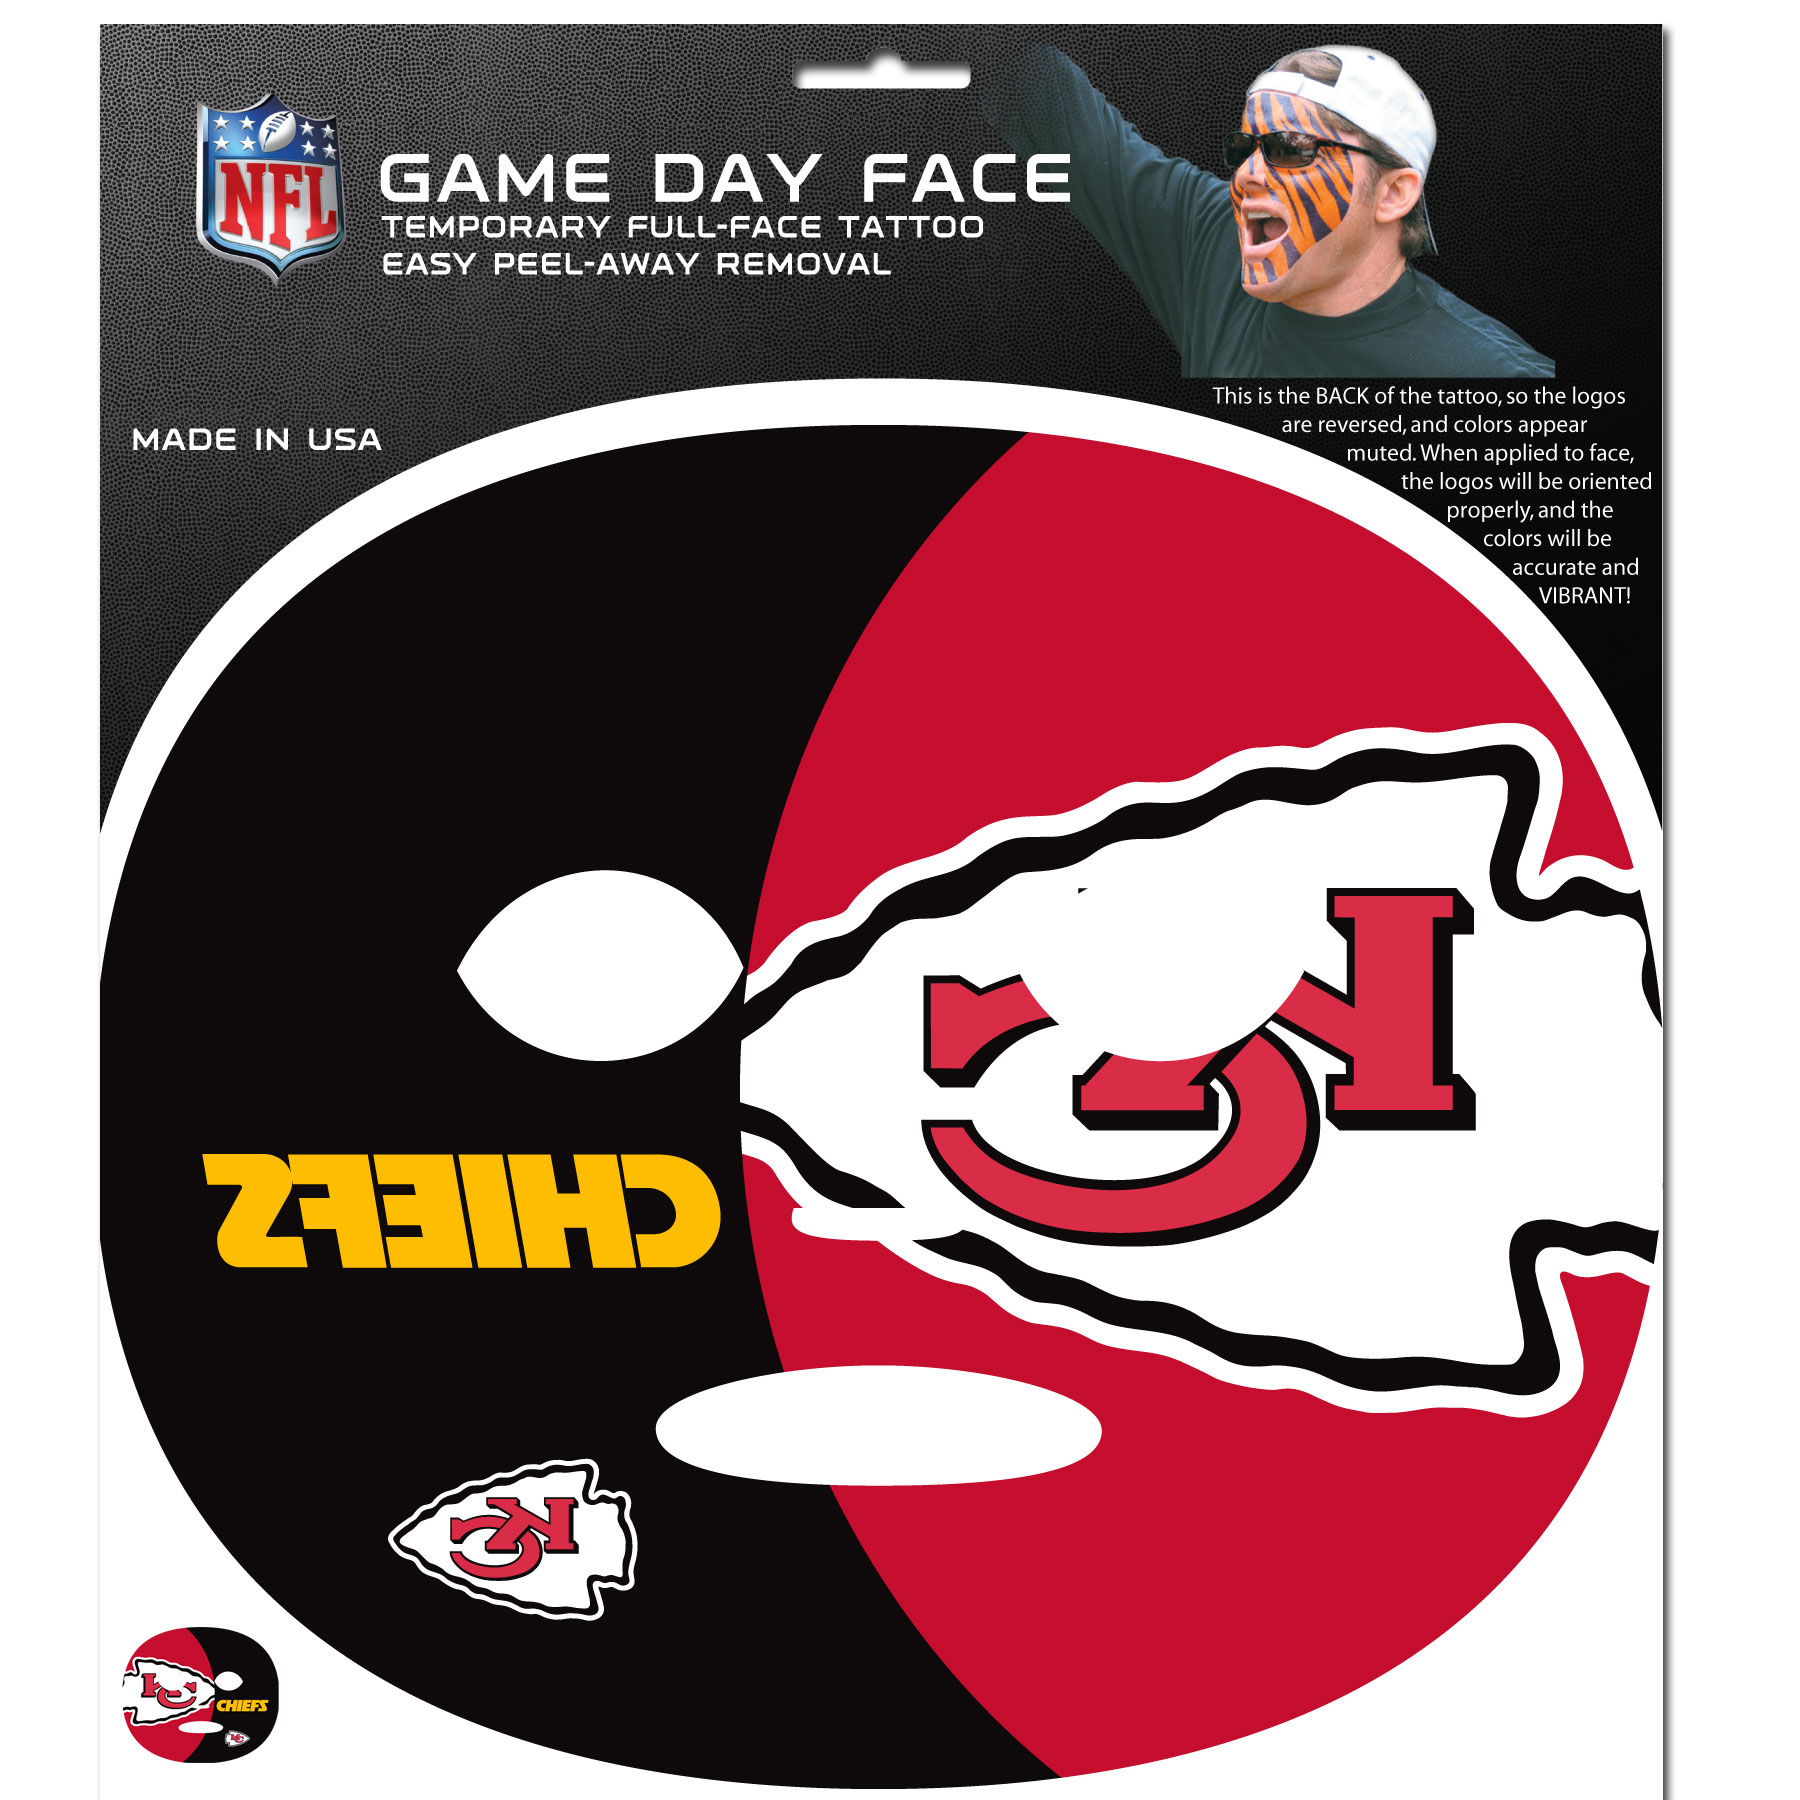 Kansas City Chiefs Set of 4 Game Day Faces - No better way to show your team pride than by painting your face. Siskiyou's Game Day Face Temporary Tattoo isn't your typical face paint. It is a water based application that doesn't smudge, smear or sweat off while you're wearing it and easily peels off after you're done celebrating your team's big Win! The temporary tattoo is large enough to trim down to fit your face. Our Game Day Face Temporary Tattoo's are fun for fans of all ages. You may have seen our product before, these are the same Temporary Face Tattoos as pitched on ABC's Shark Tank.